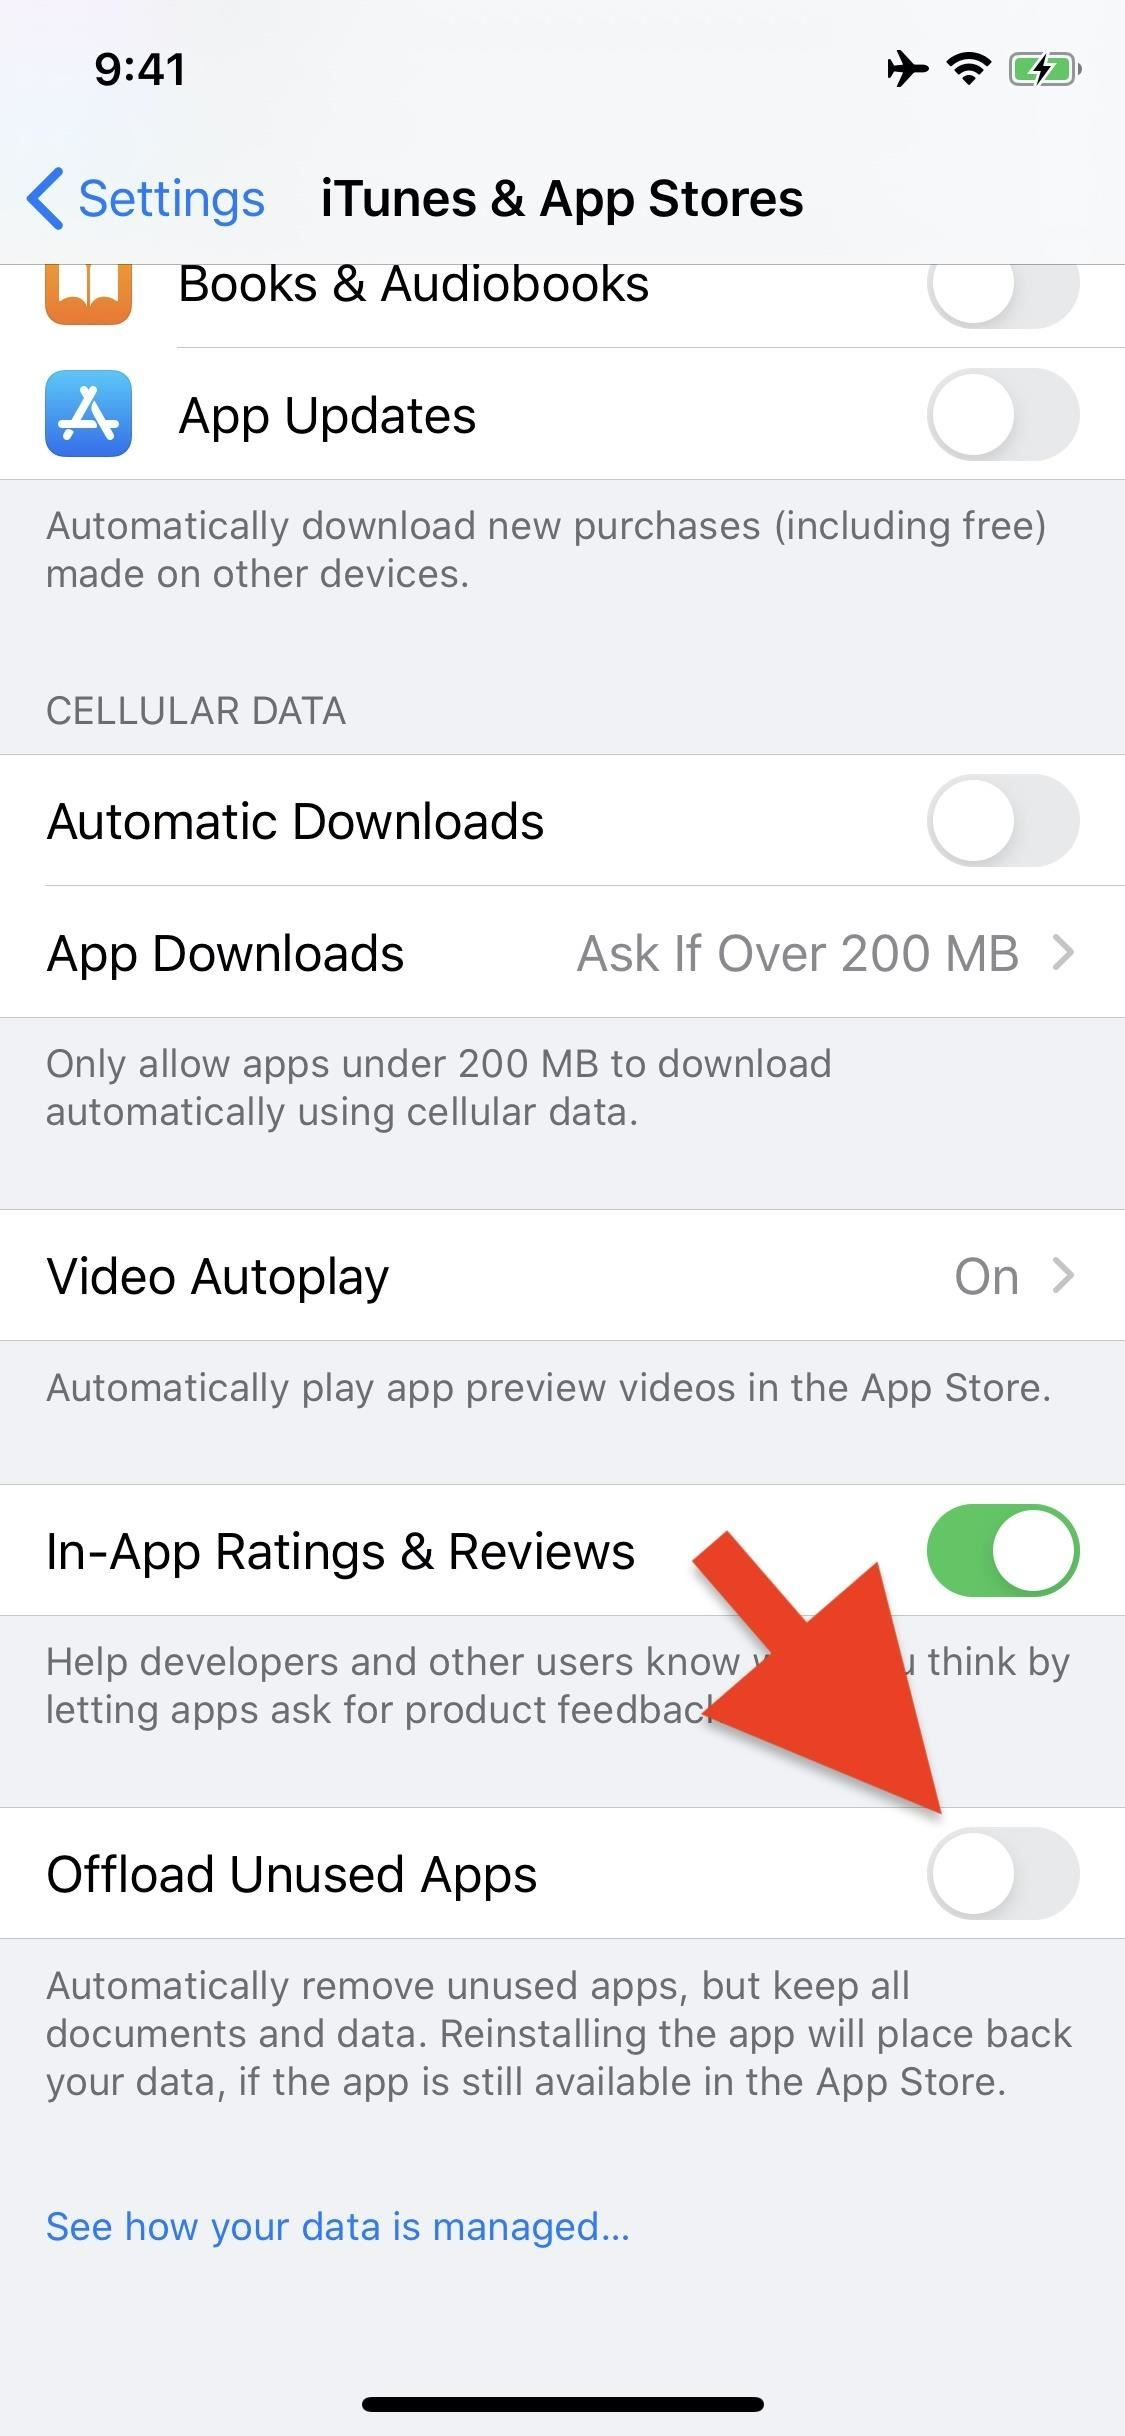 How to Offload Unused Apps to Free Up Storage Space on Your iPhone